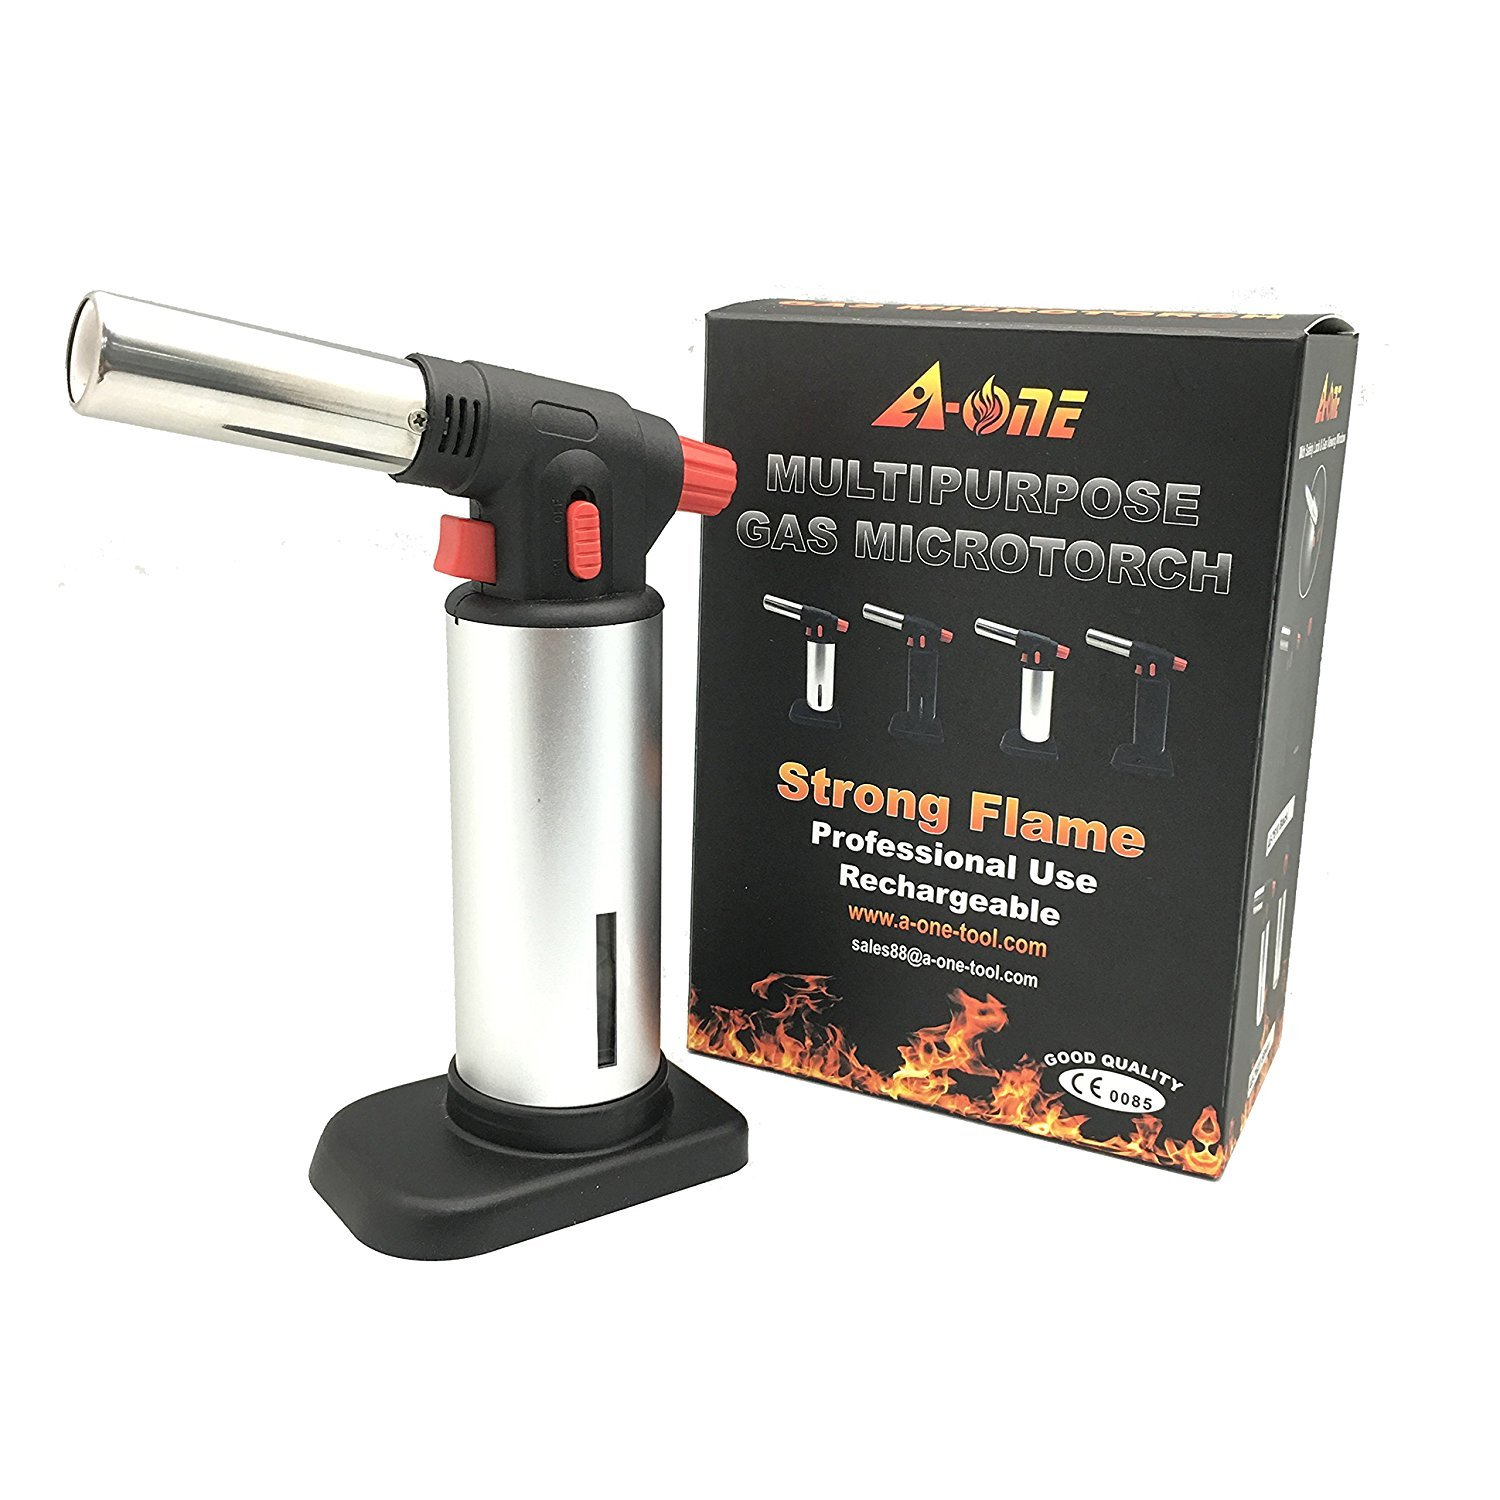 Culinary Torch, AONE Creme Brulee Torch - Kitchen Torch - Best Creme Brulee Torch - Food Torch - Cooking Torch - Cooking Blow Torch - Brulee Torch - Butane Torch For Cooking - Blow Torch SYNCHKG096028